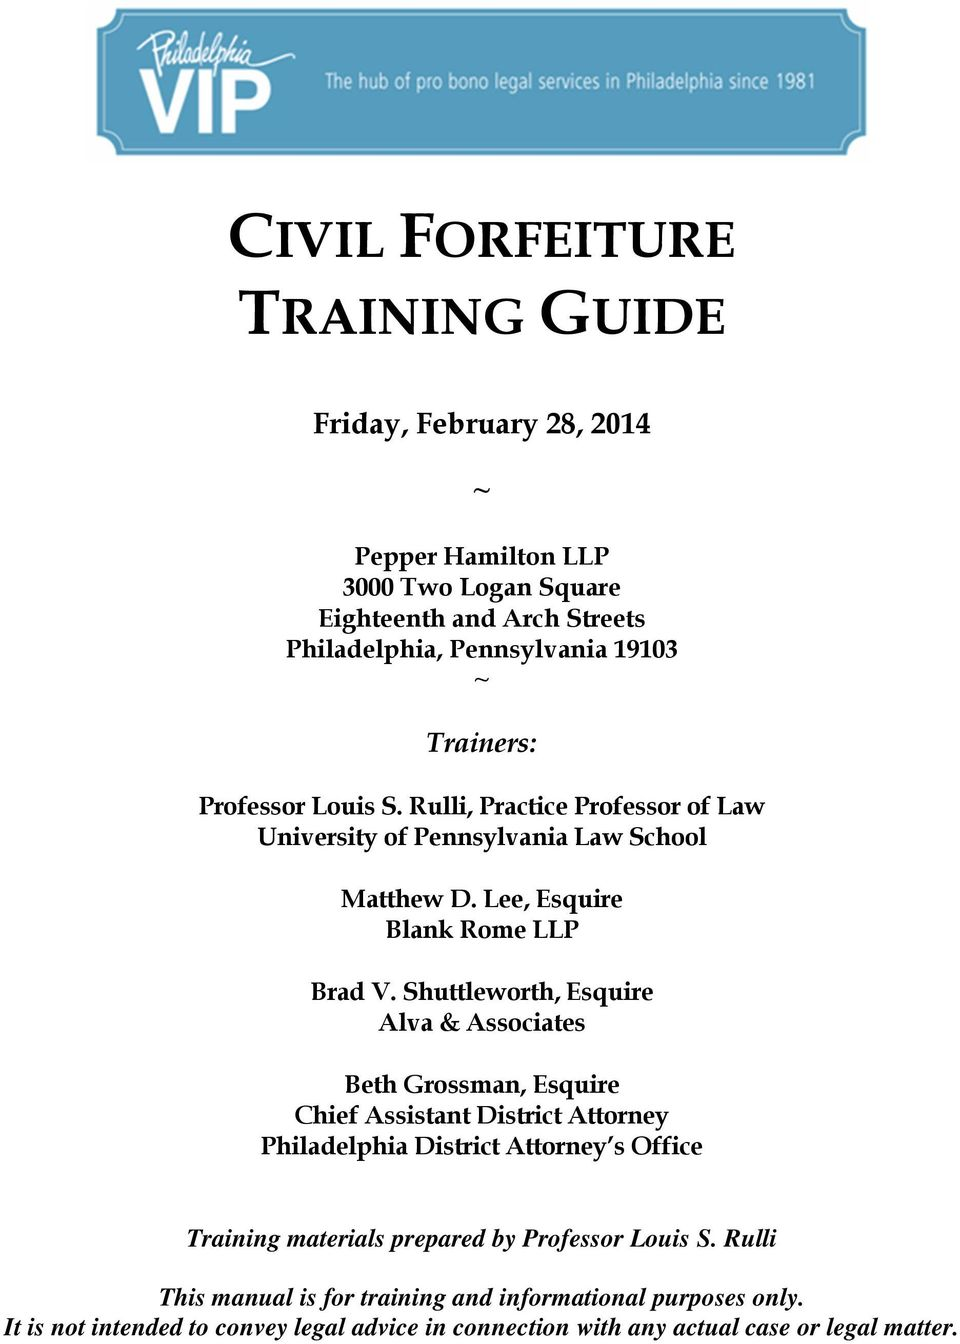 Civil forfeiture training guide pdf for Lees associates llp